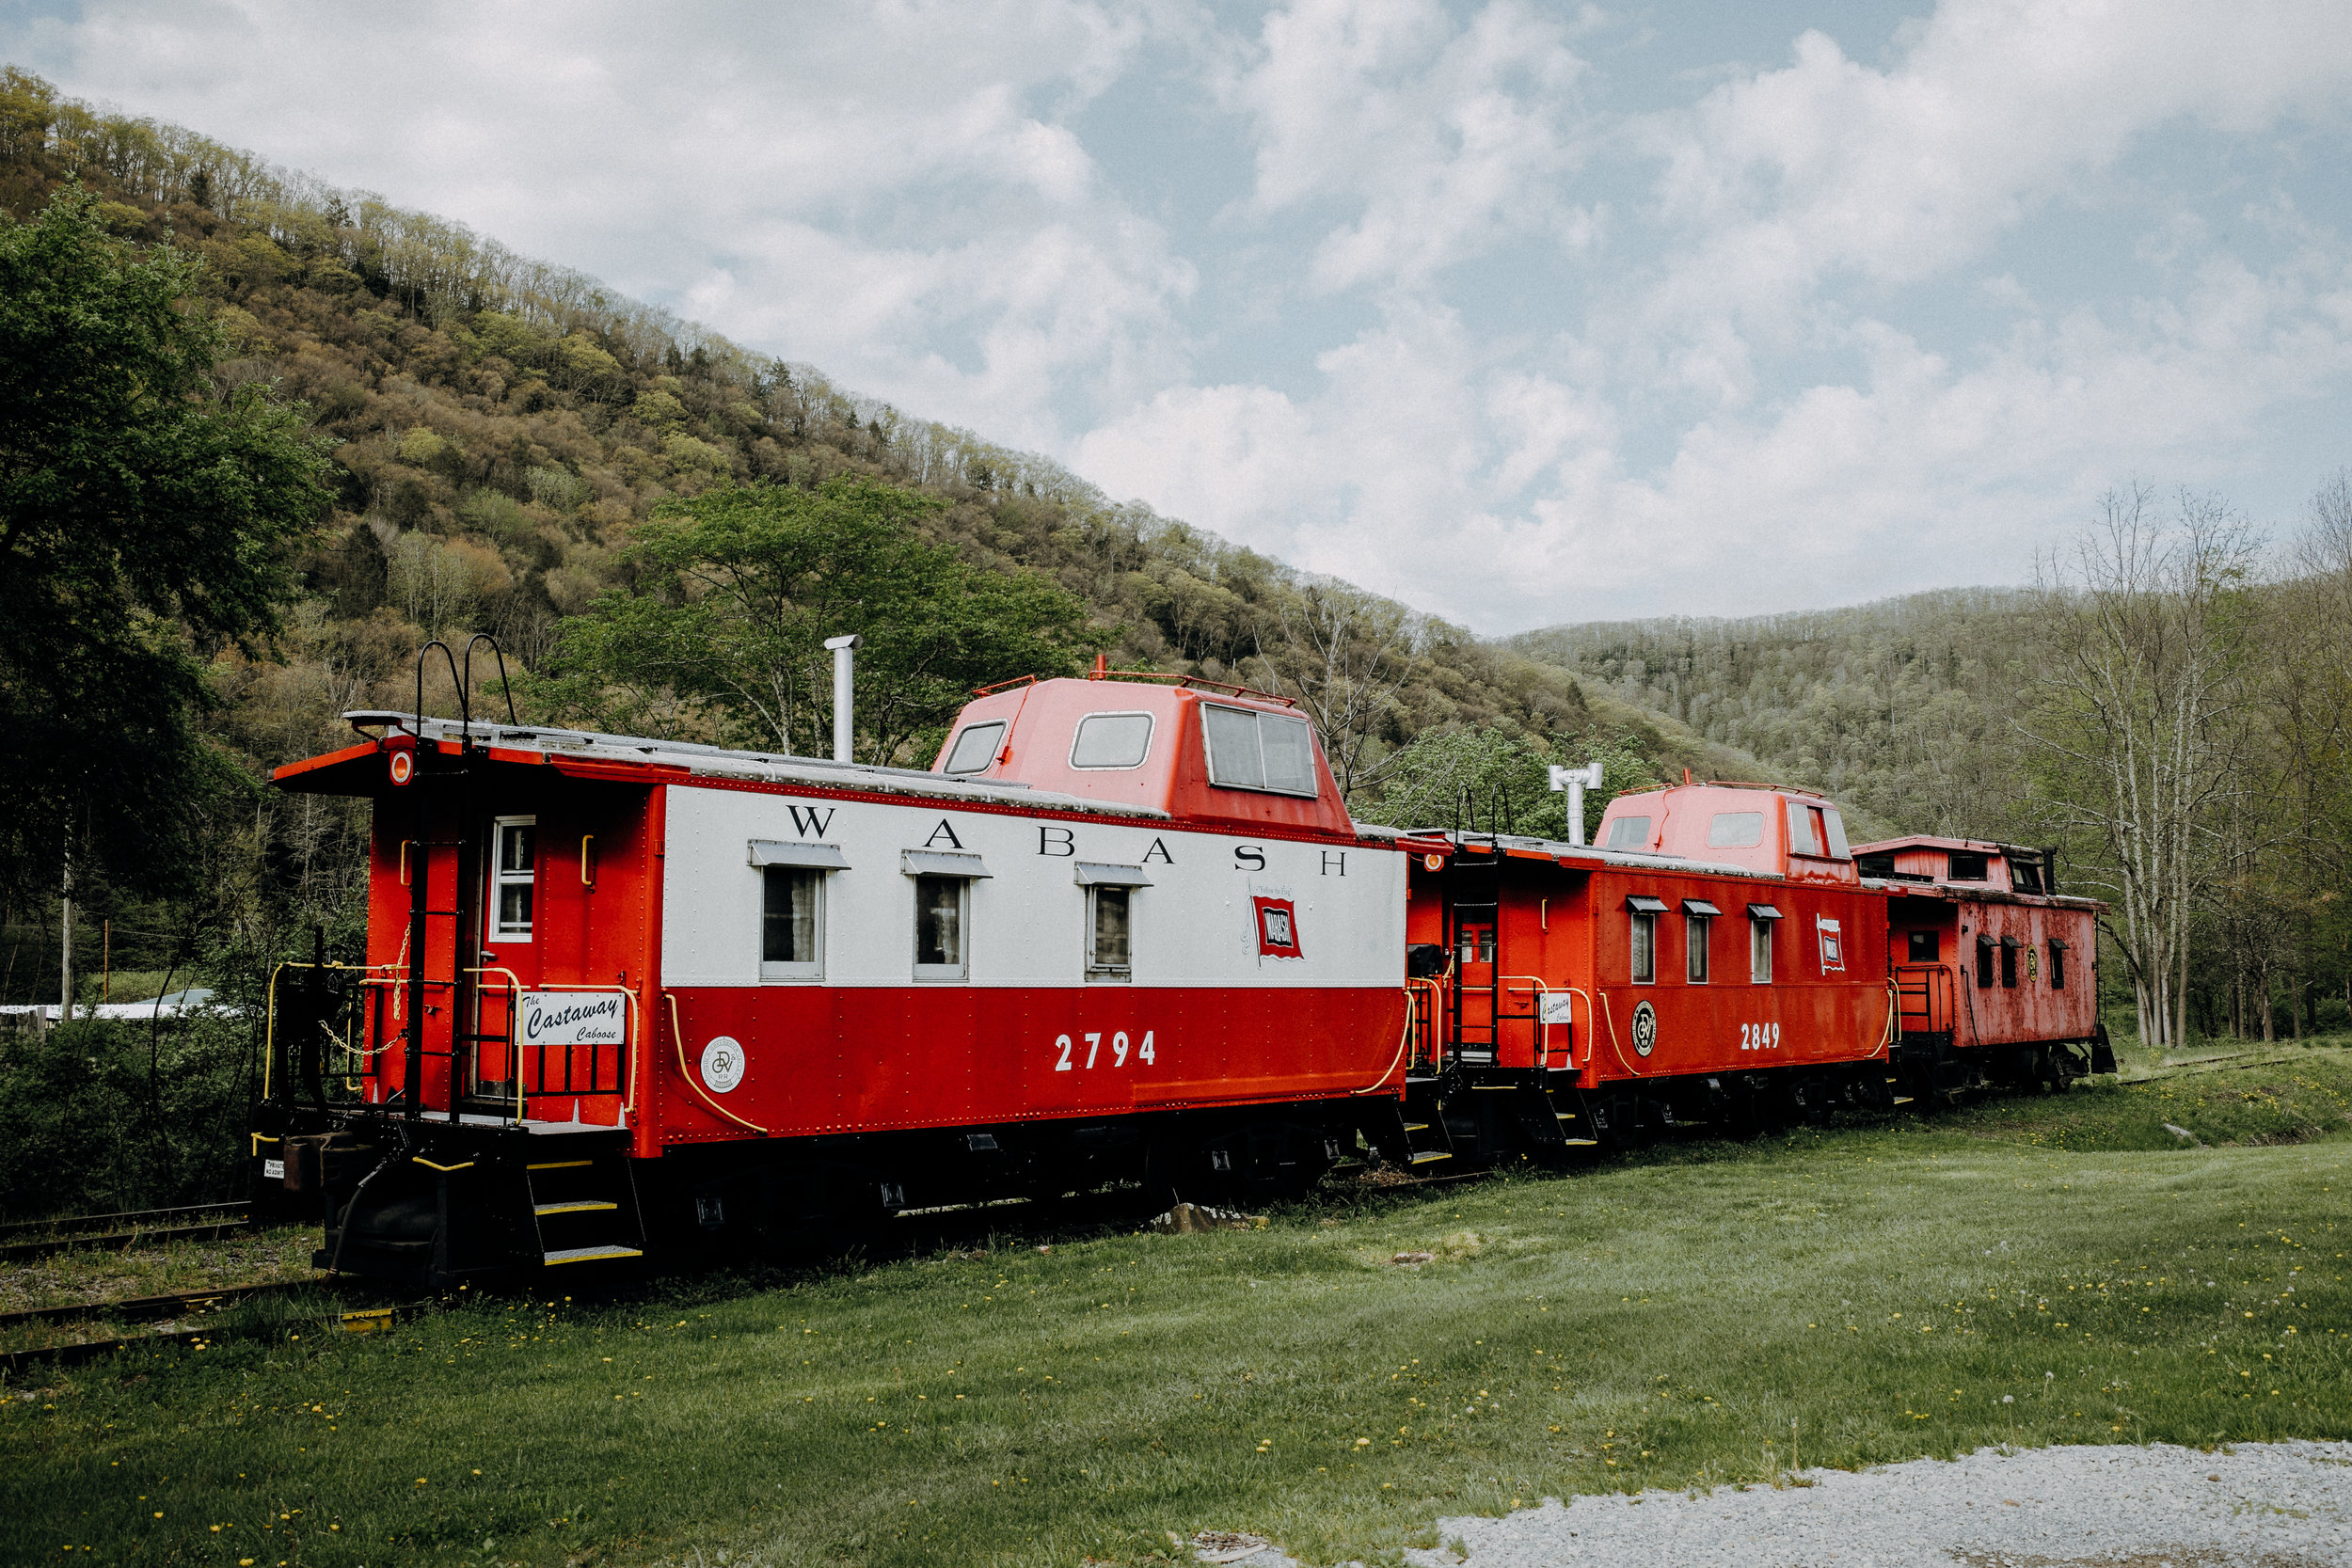 pictured above: The Castaway Caboose.